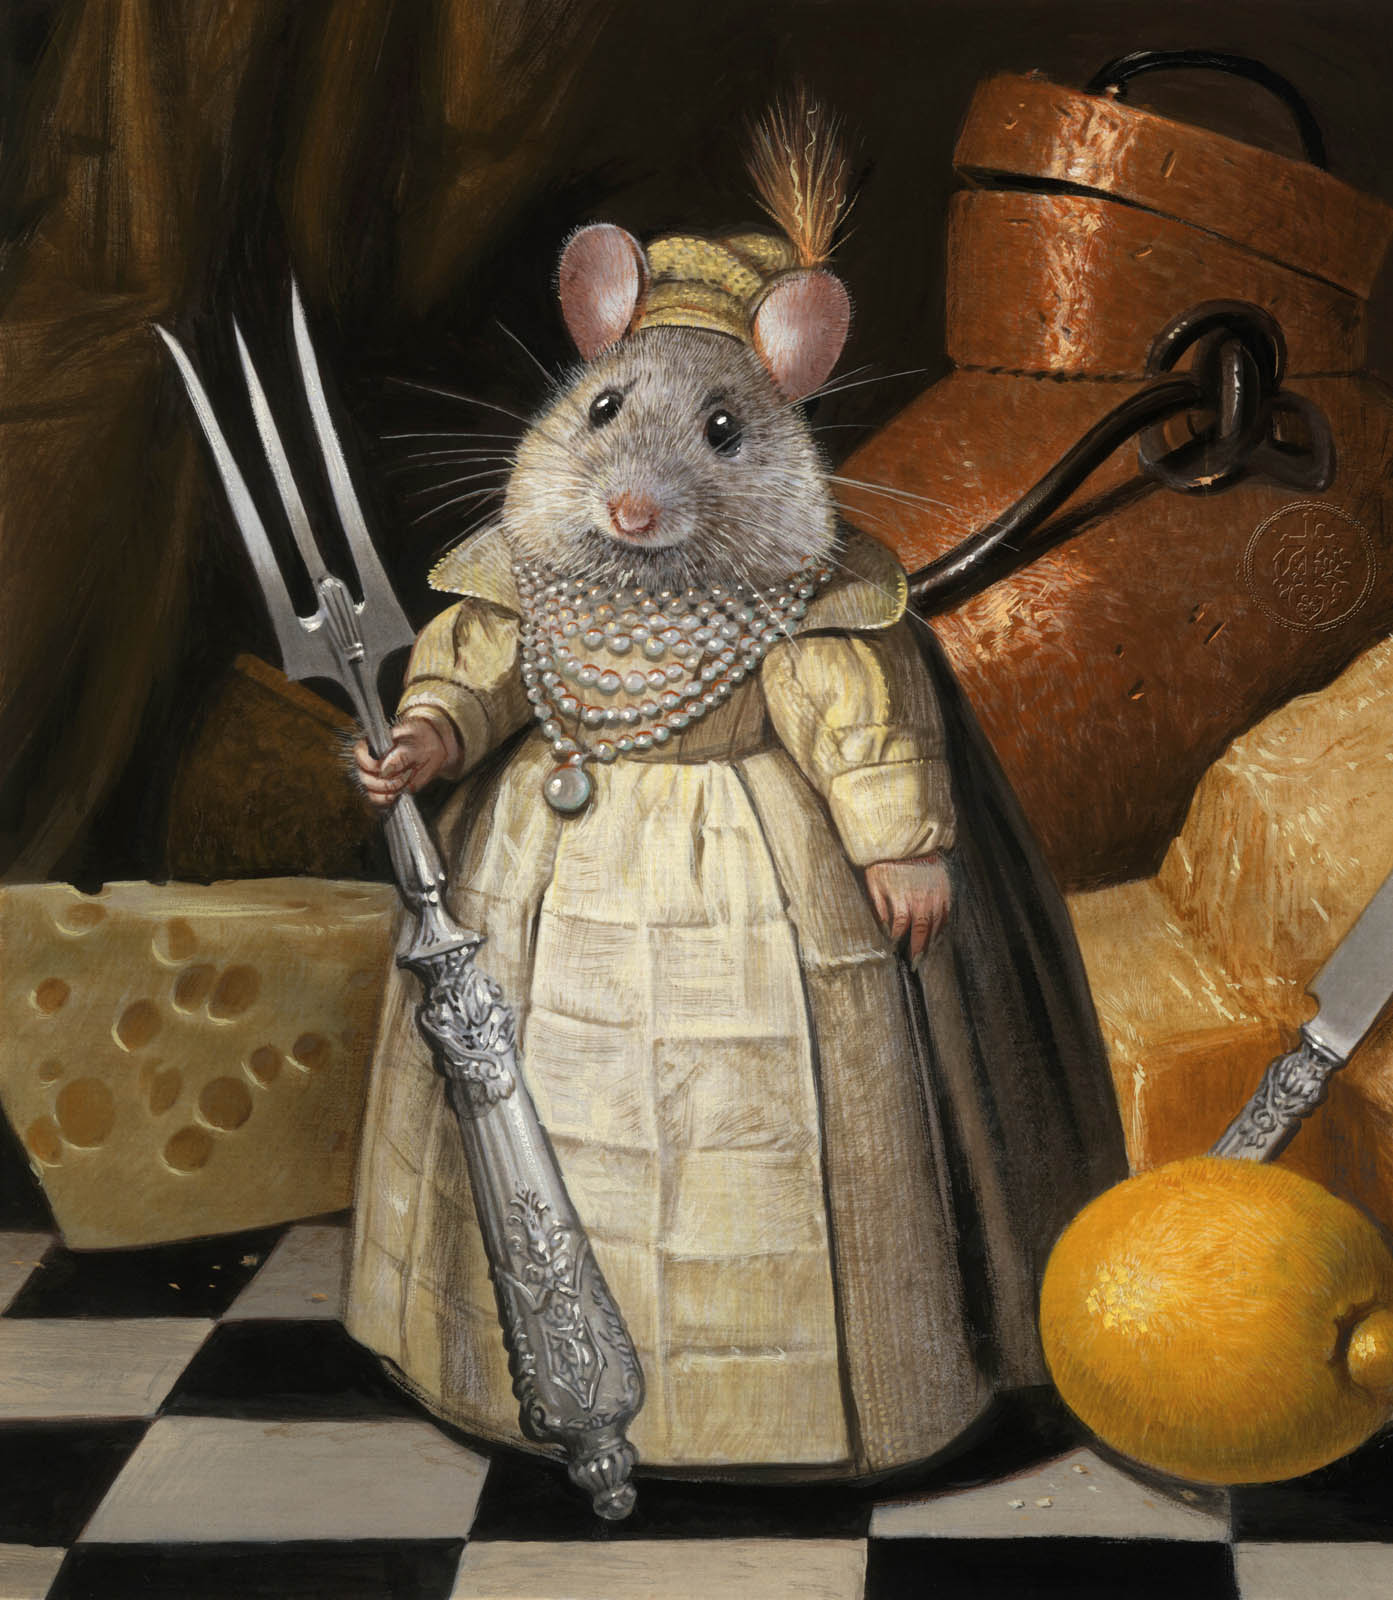 surreal paintings artwork rat